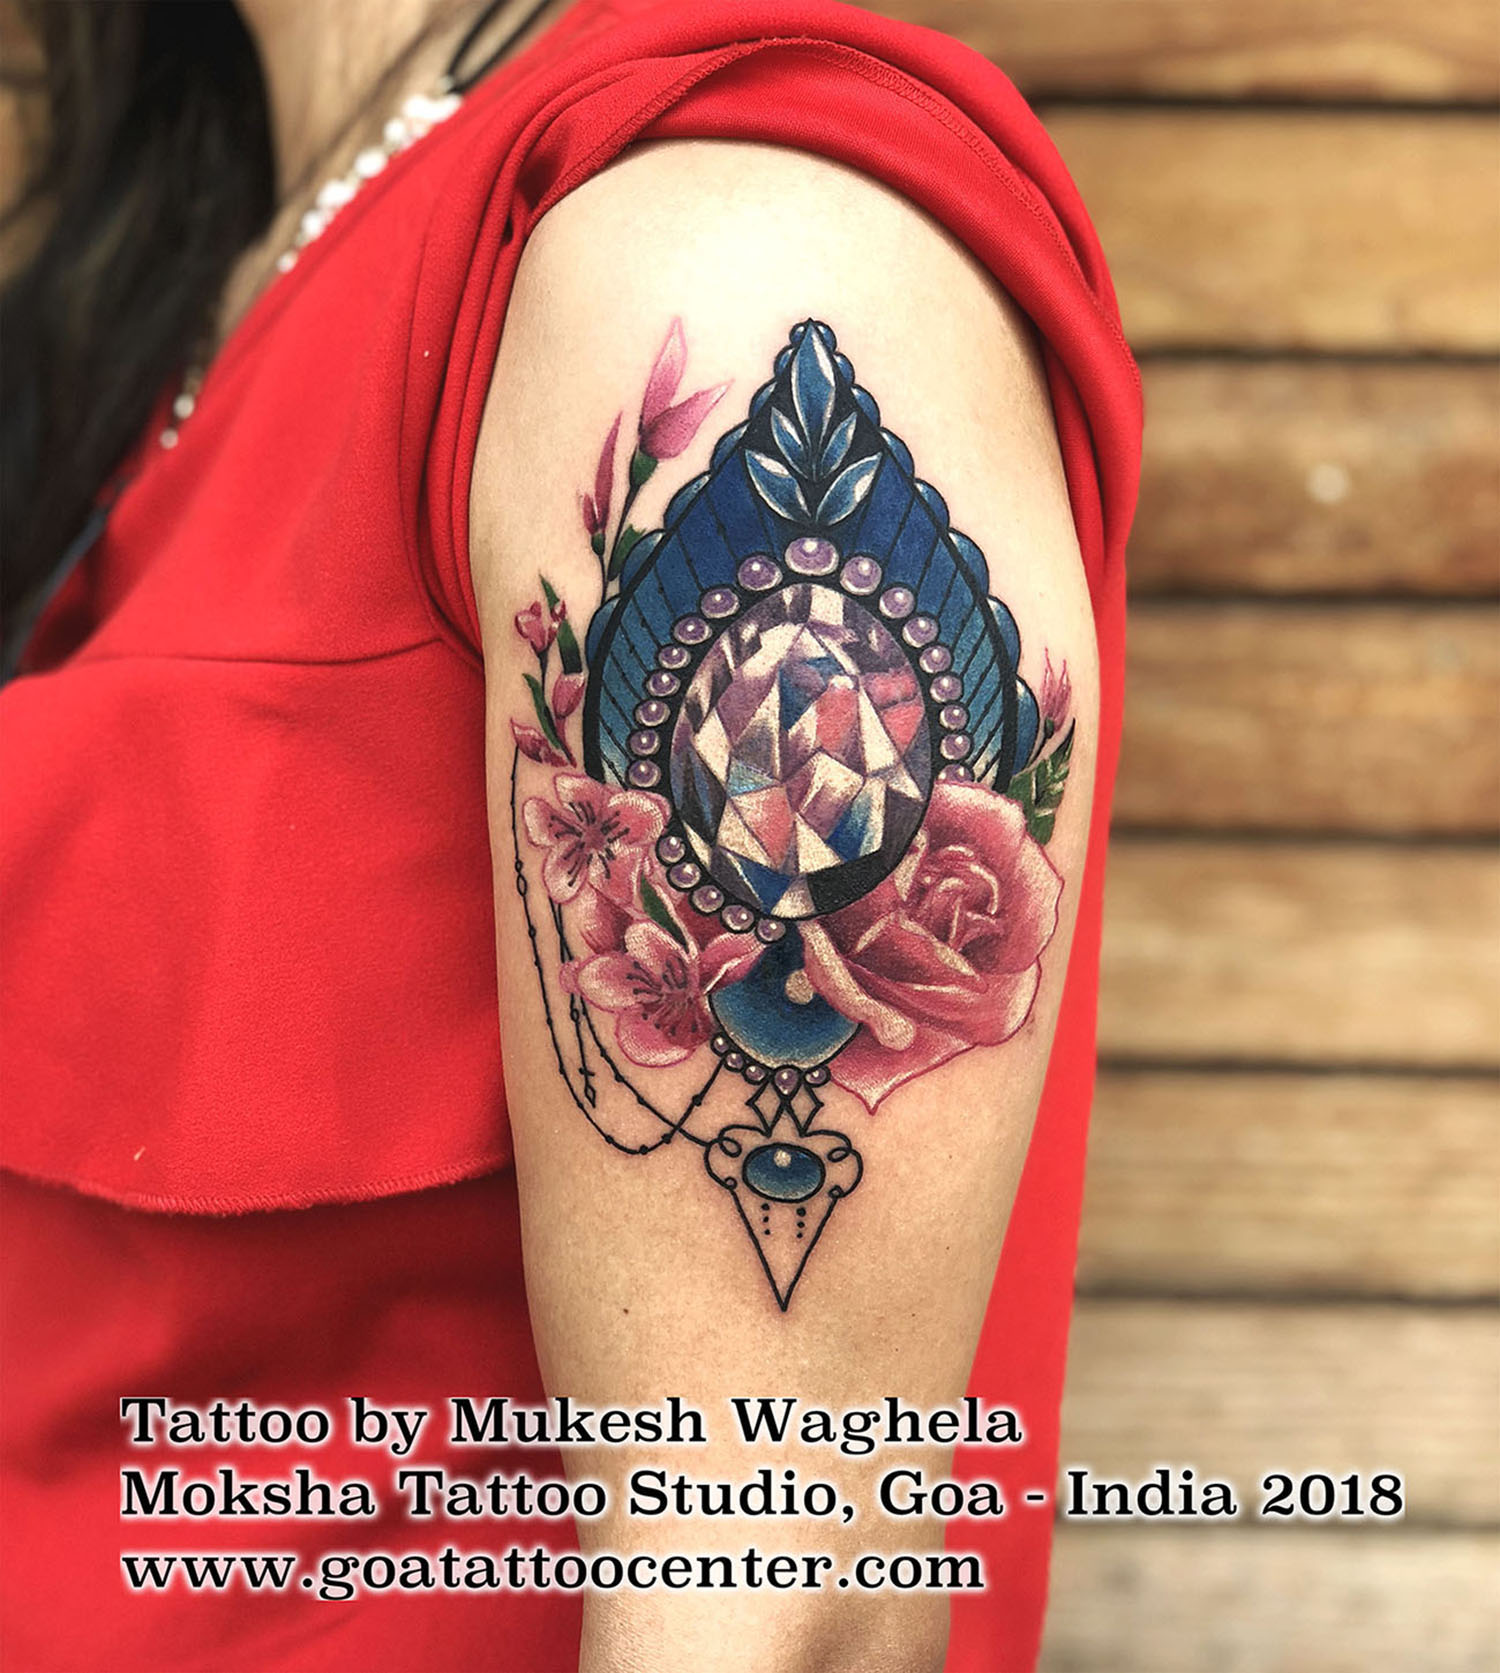 Ornamental tattoo done by Mukesh Waghela at Moksha Tattoo Studio Goa India